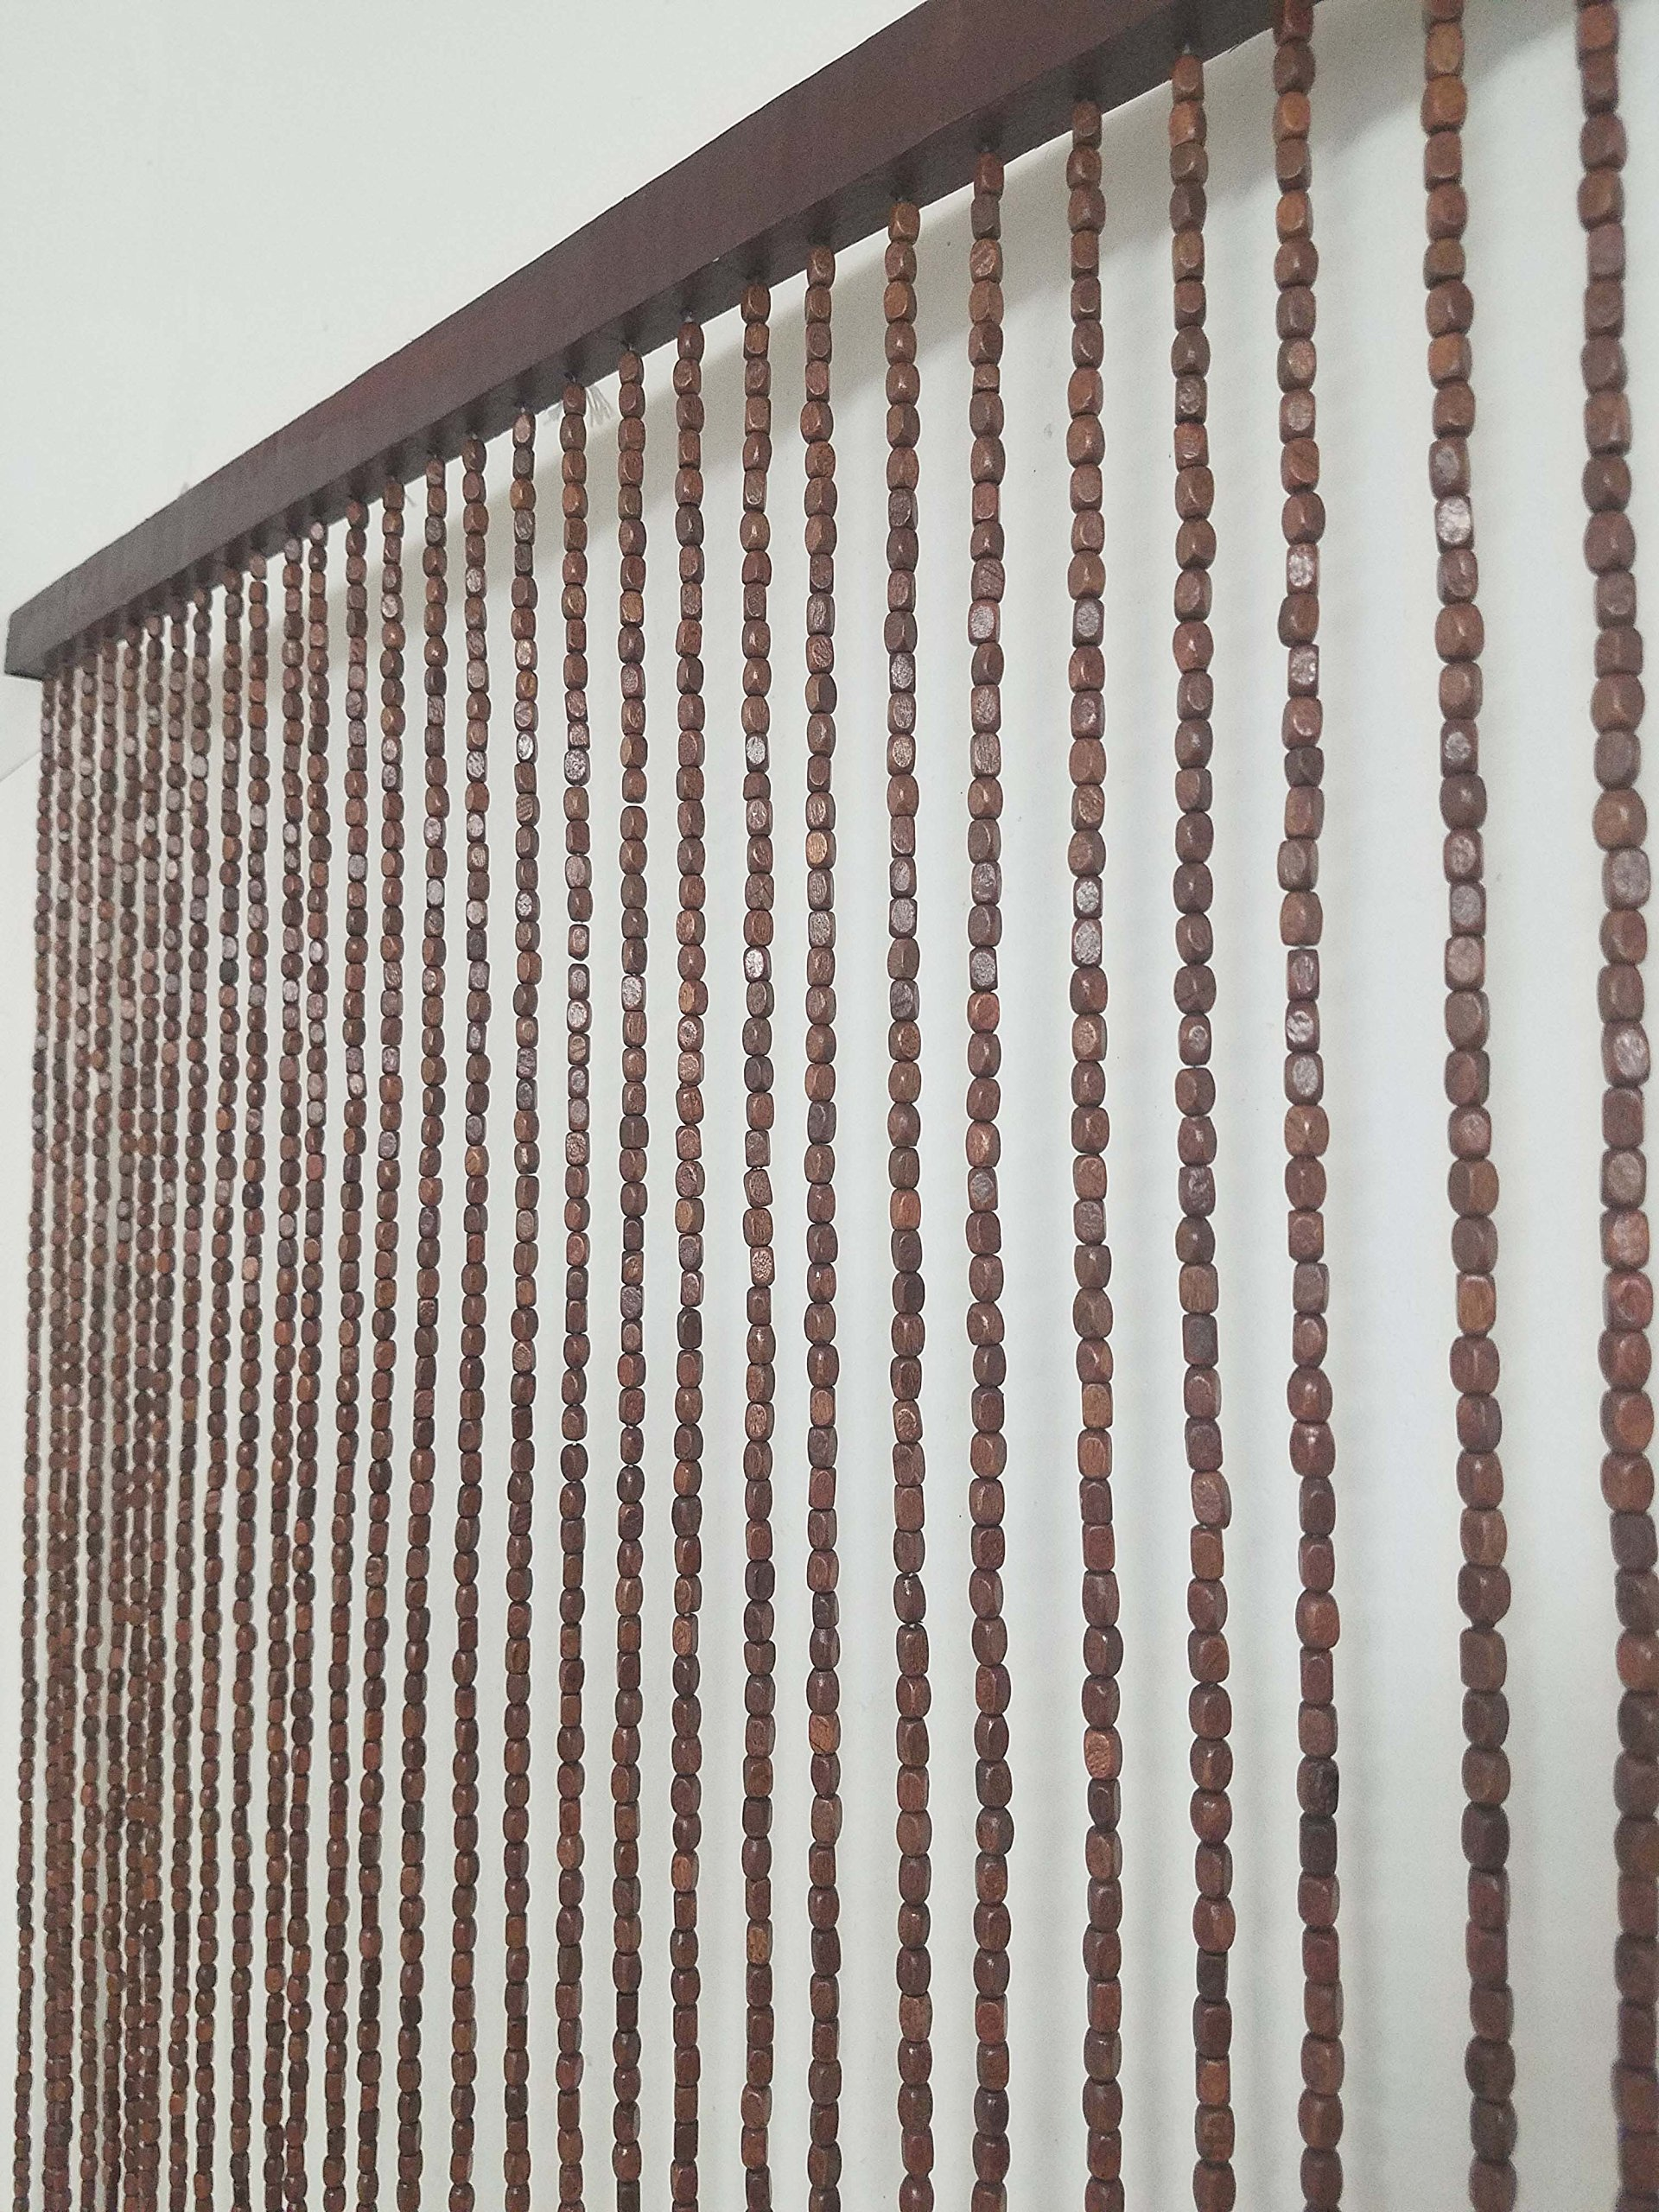 EVIDECO 5500004 Wooden Beaded Curtain Doorway, 41 Strings 78.8'' H x 35.5'' W, Natural